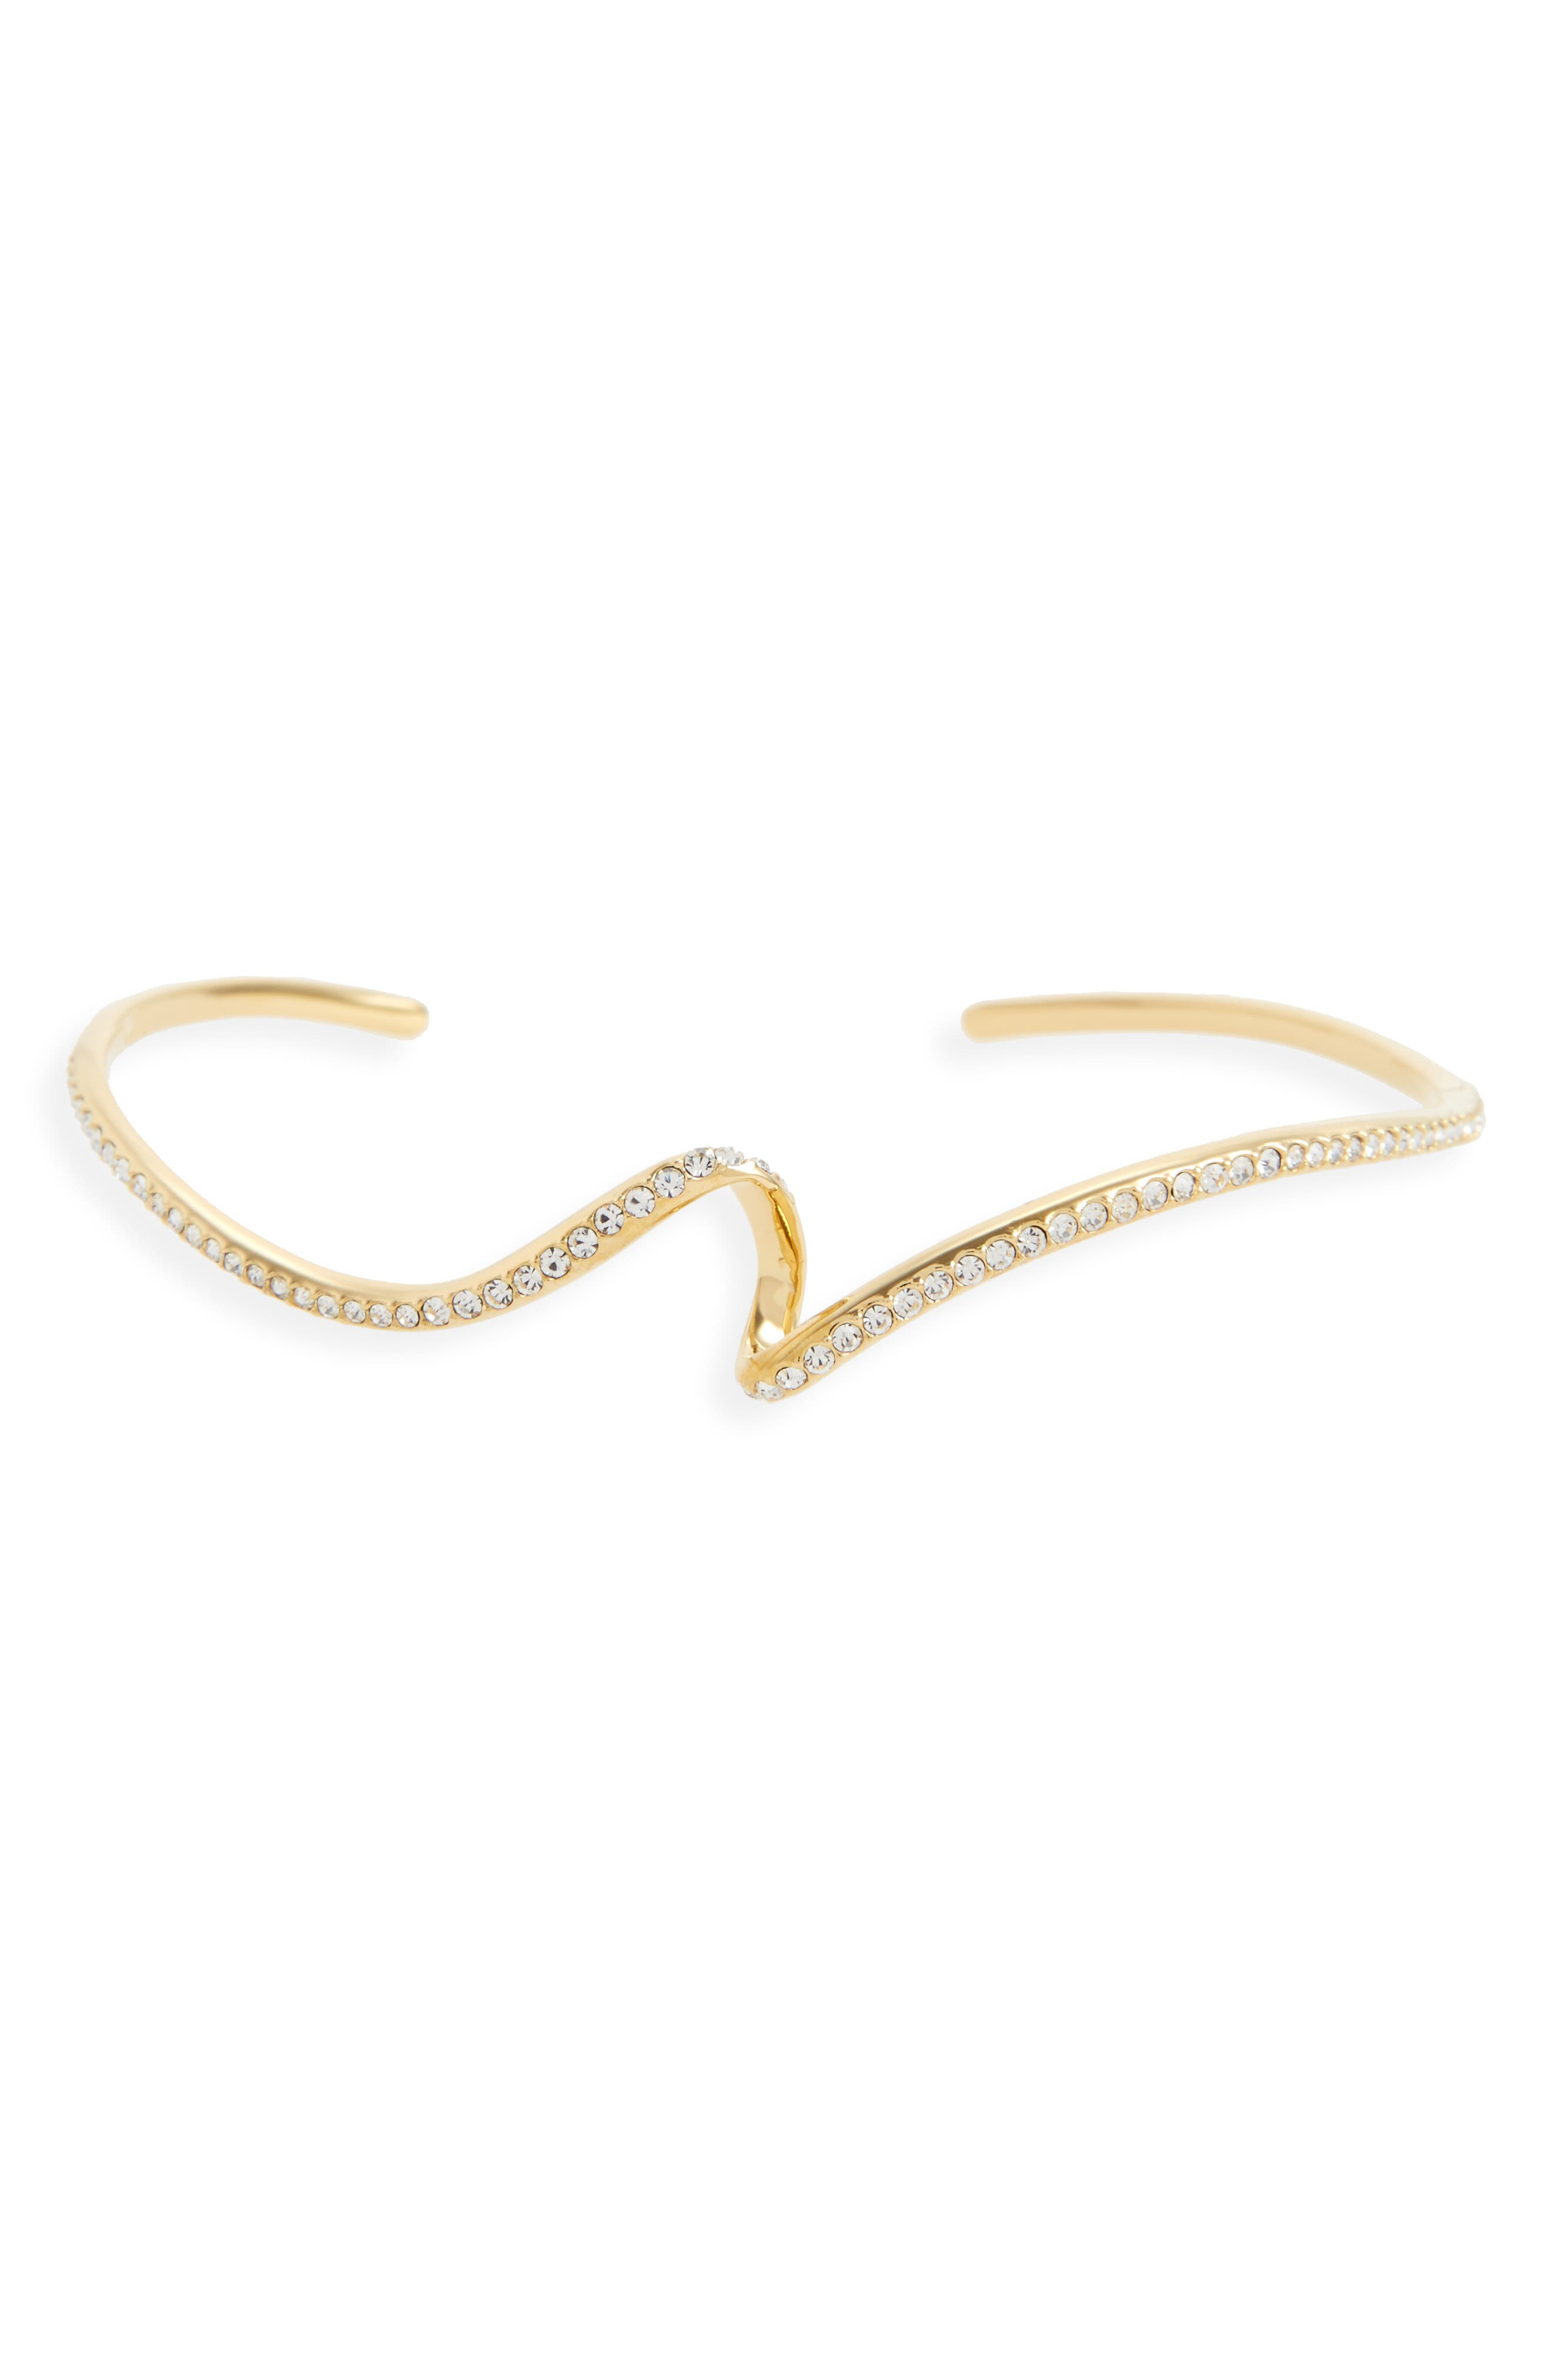 Citron Crystal Cuff,                         Main,                         color, Gold